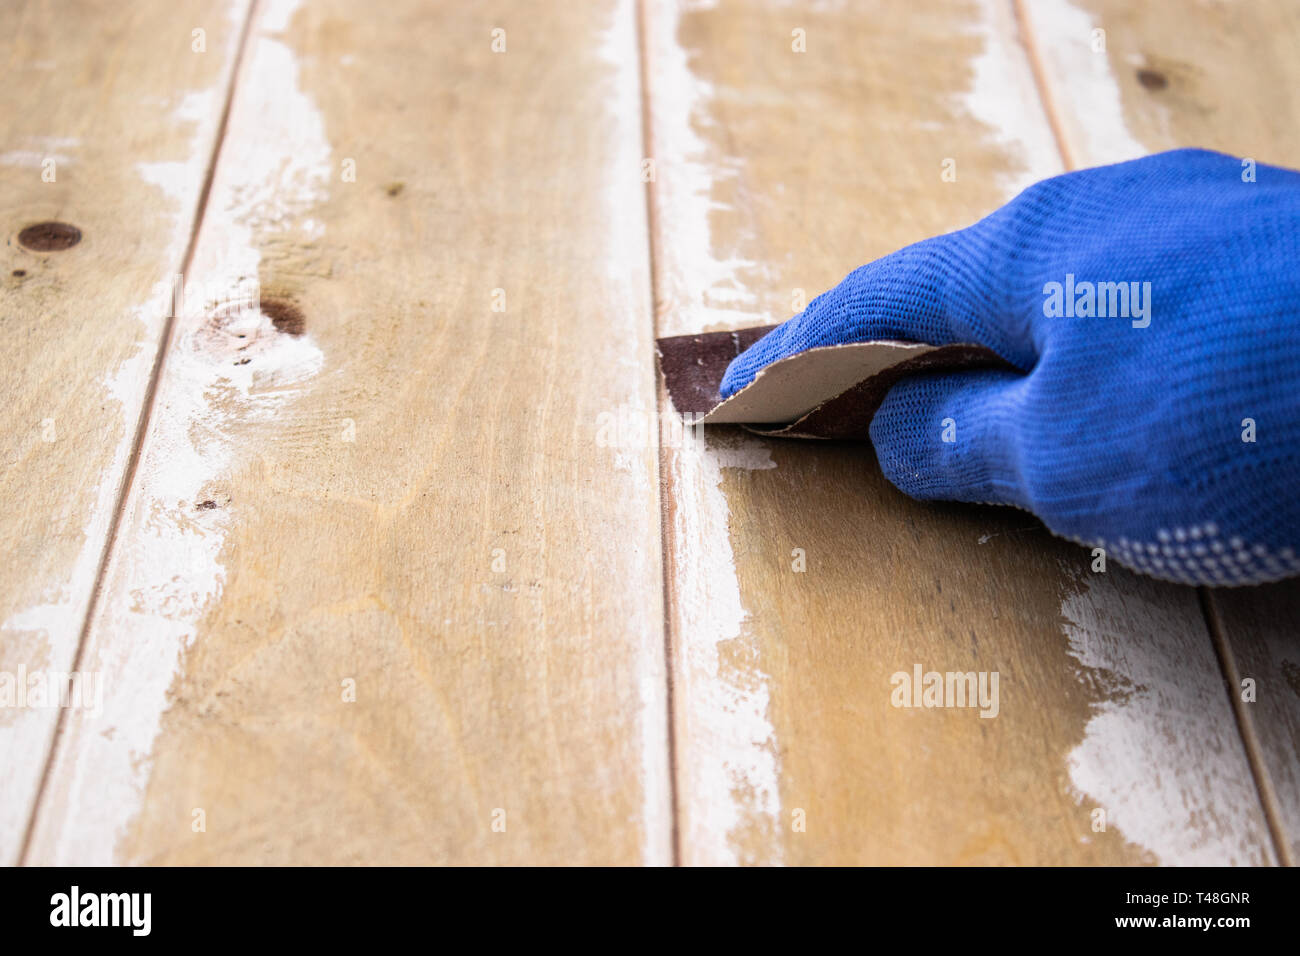 emery paper rubs the board. Grinding boards before painting. Preparation for painting. - Stock Image